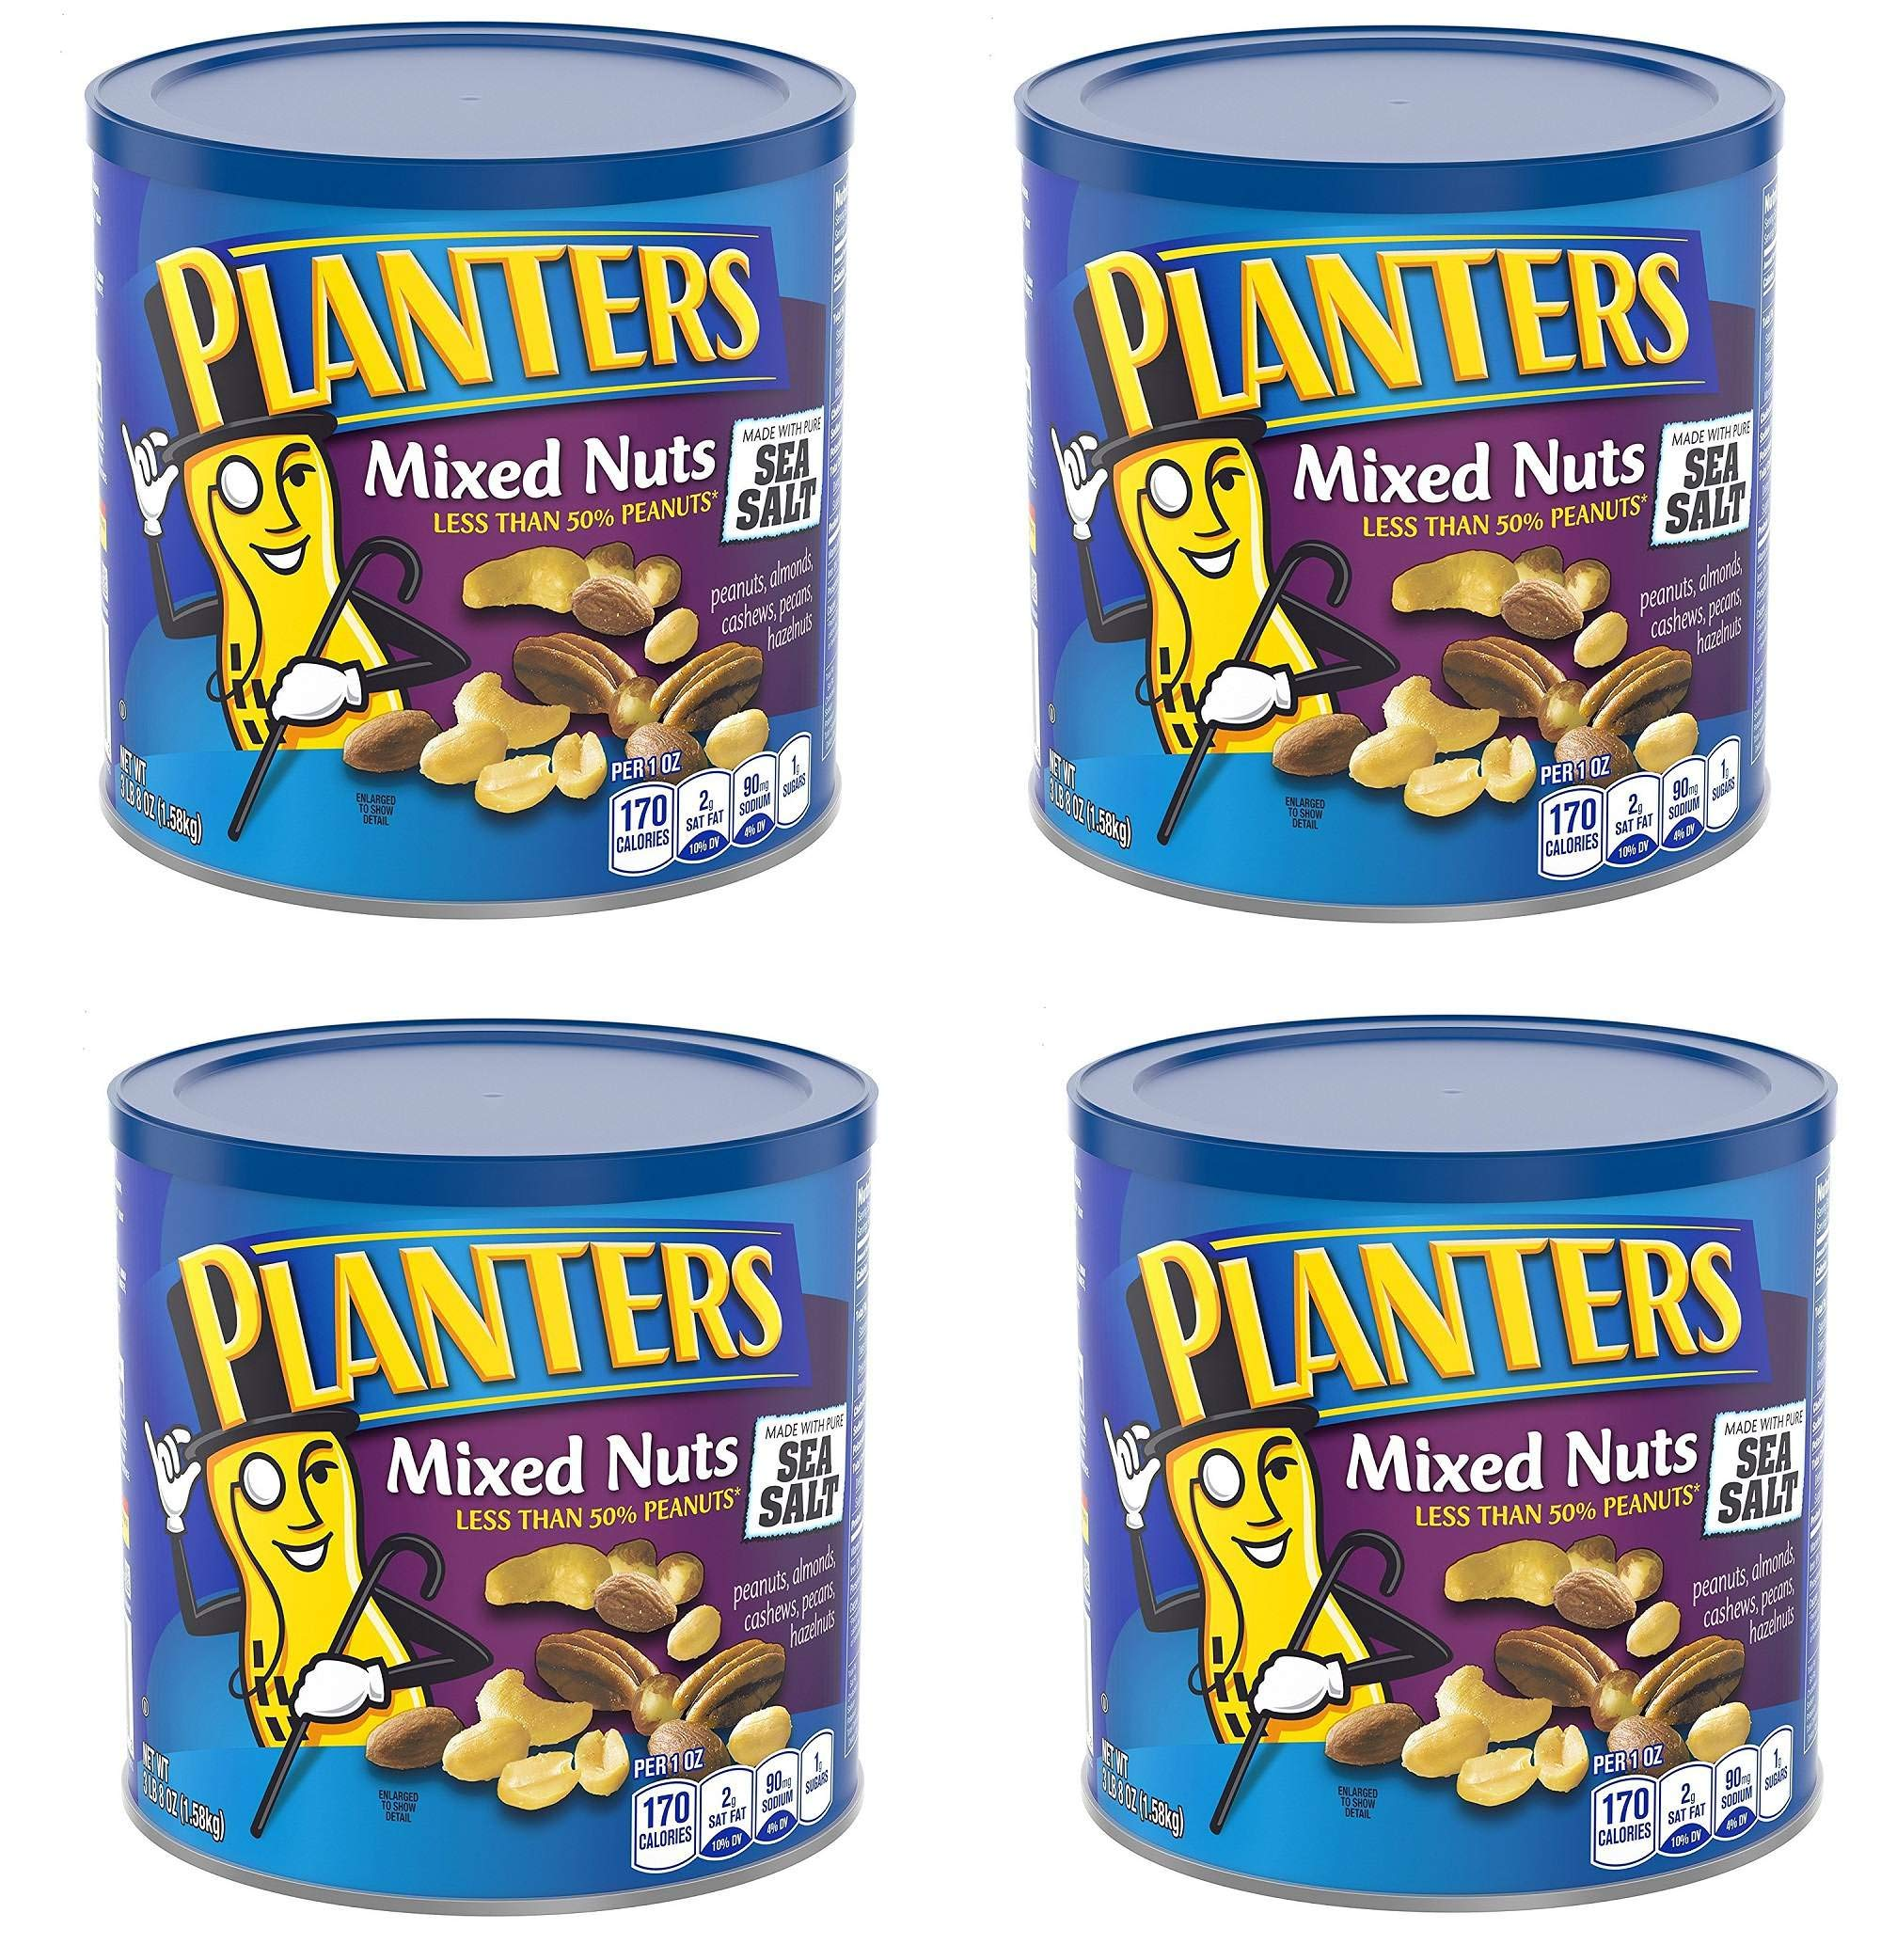 Planters Mixed Nuts, Mixed Nuts, Regular, 56 Ounce, 4 Cans